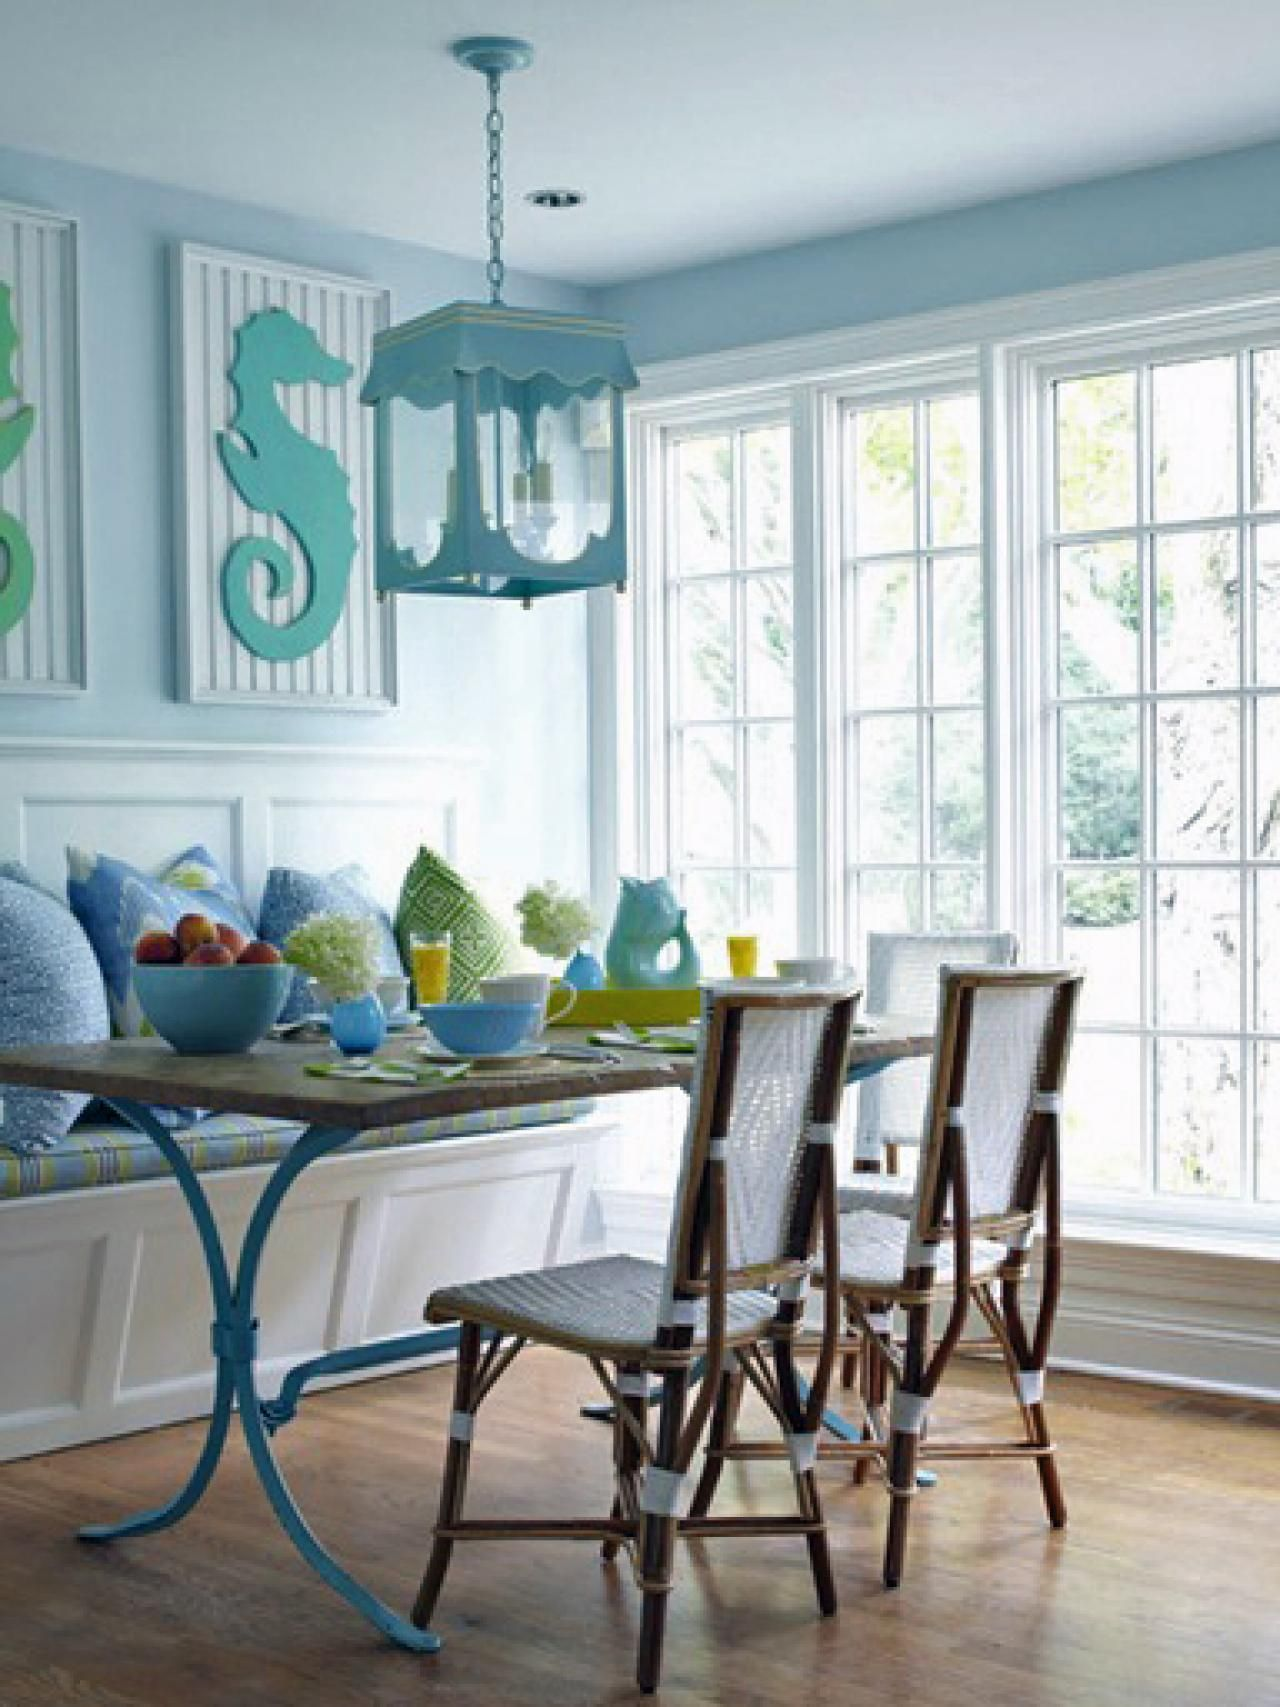 Coastal Kitchen and Dining Room Pictures | Hgtv, Hgtv kitchens and ...